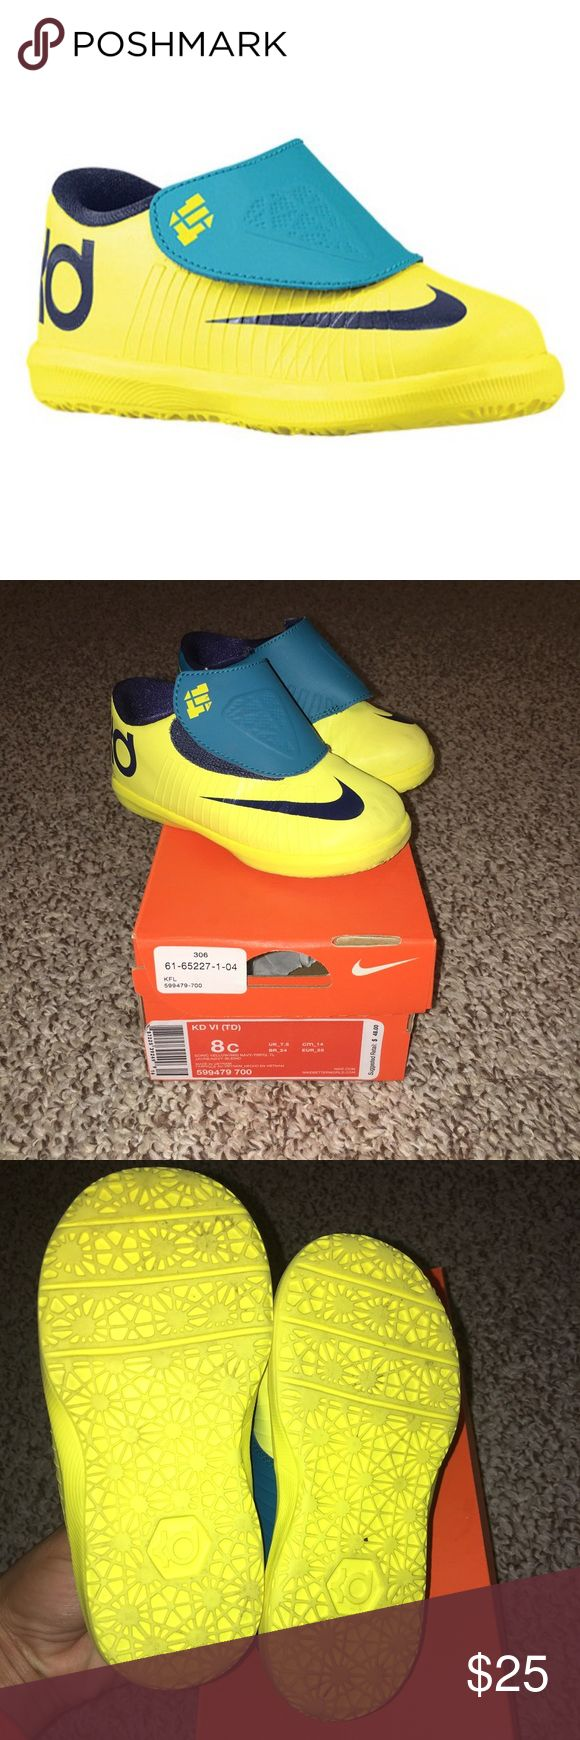 Nike KD VI Sneakers Toddler size 8 in excellent condition. Kevin Durant gym shoes. Velcro closure and extremely lightweight. Nike Shoes Sneakers